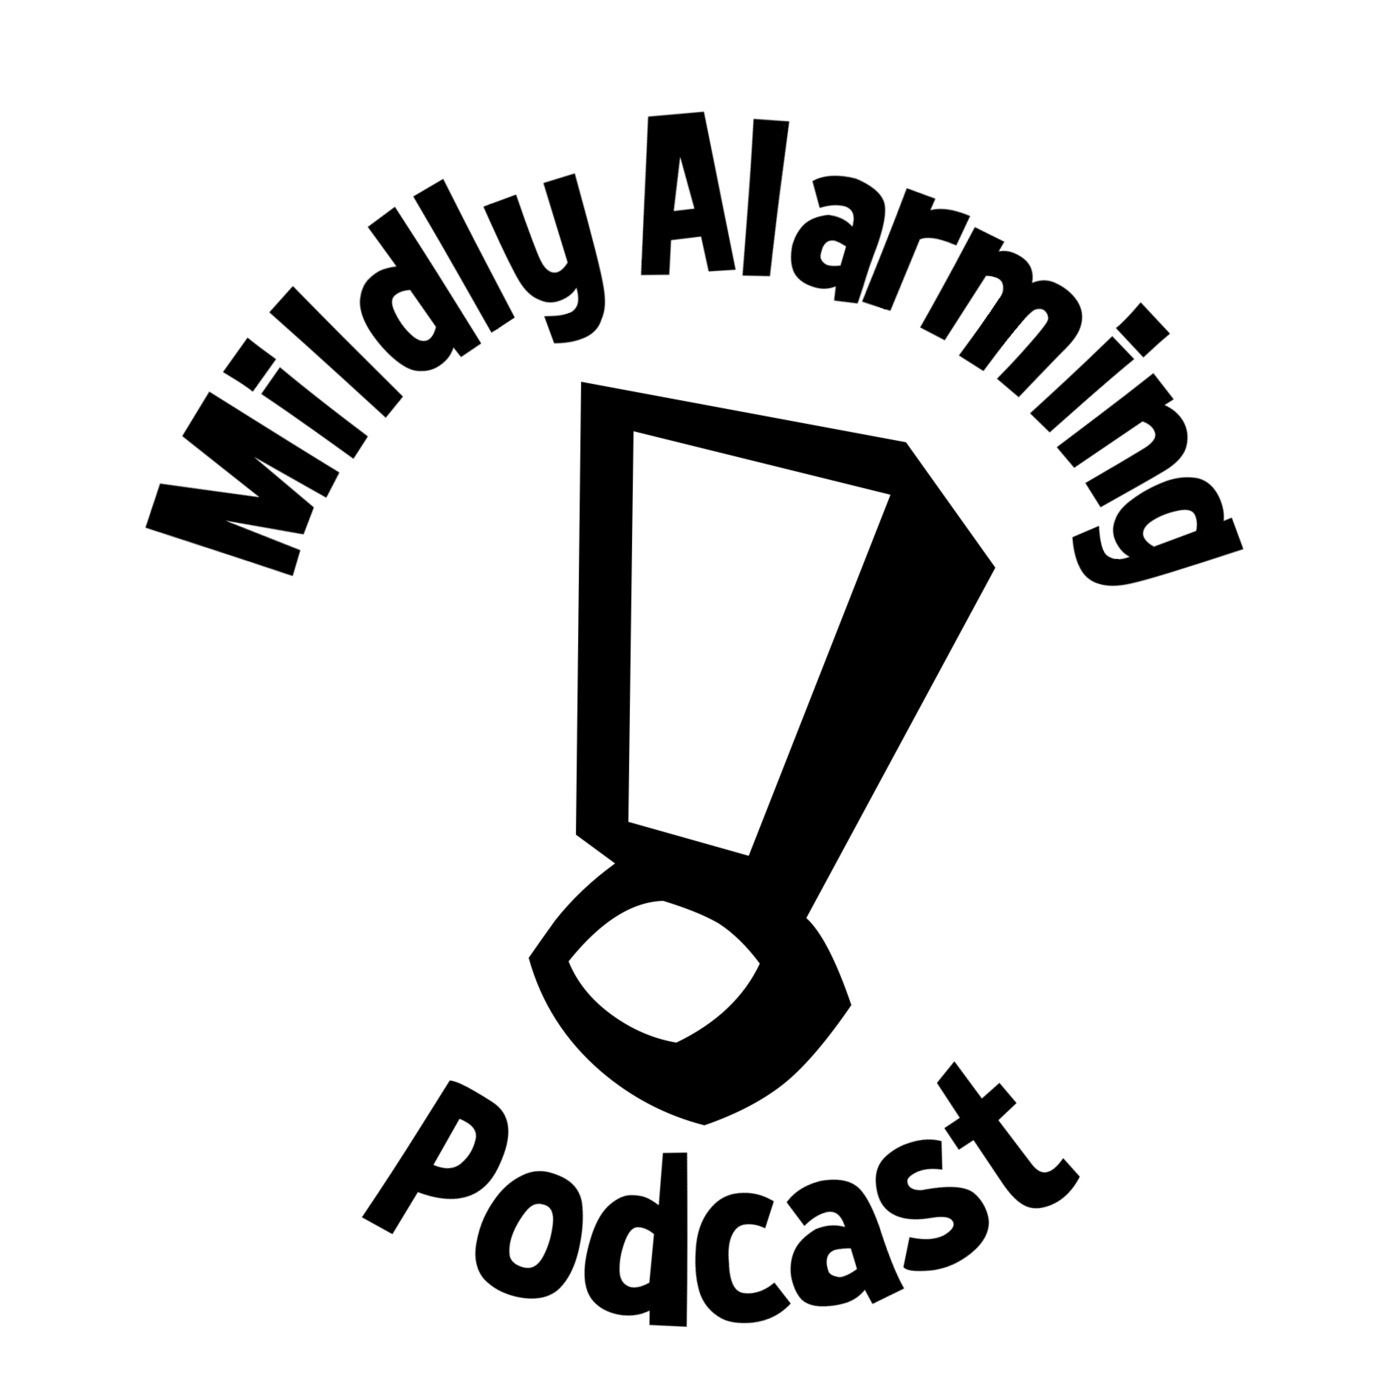 The Mildly Alarming Podcast